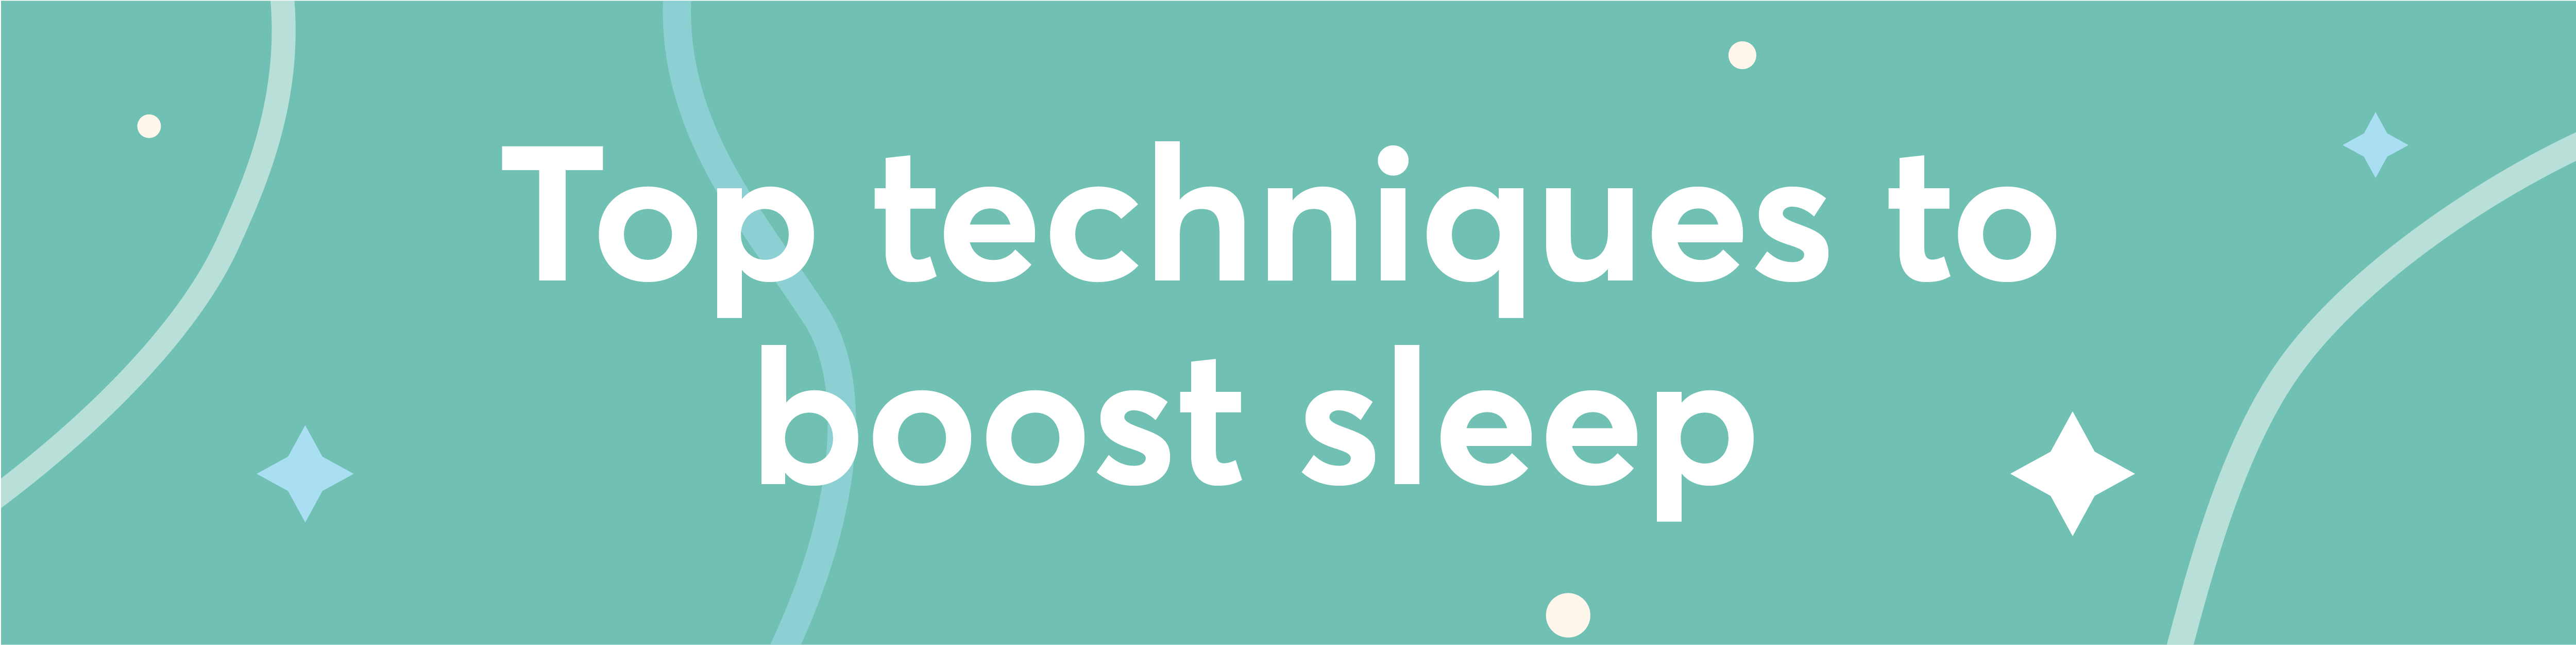 Shleep: Top techniques to boost sleep